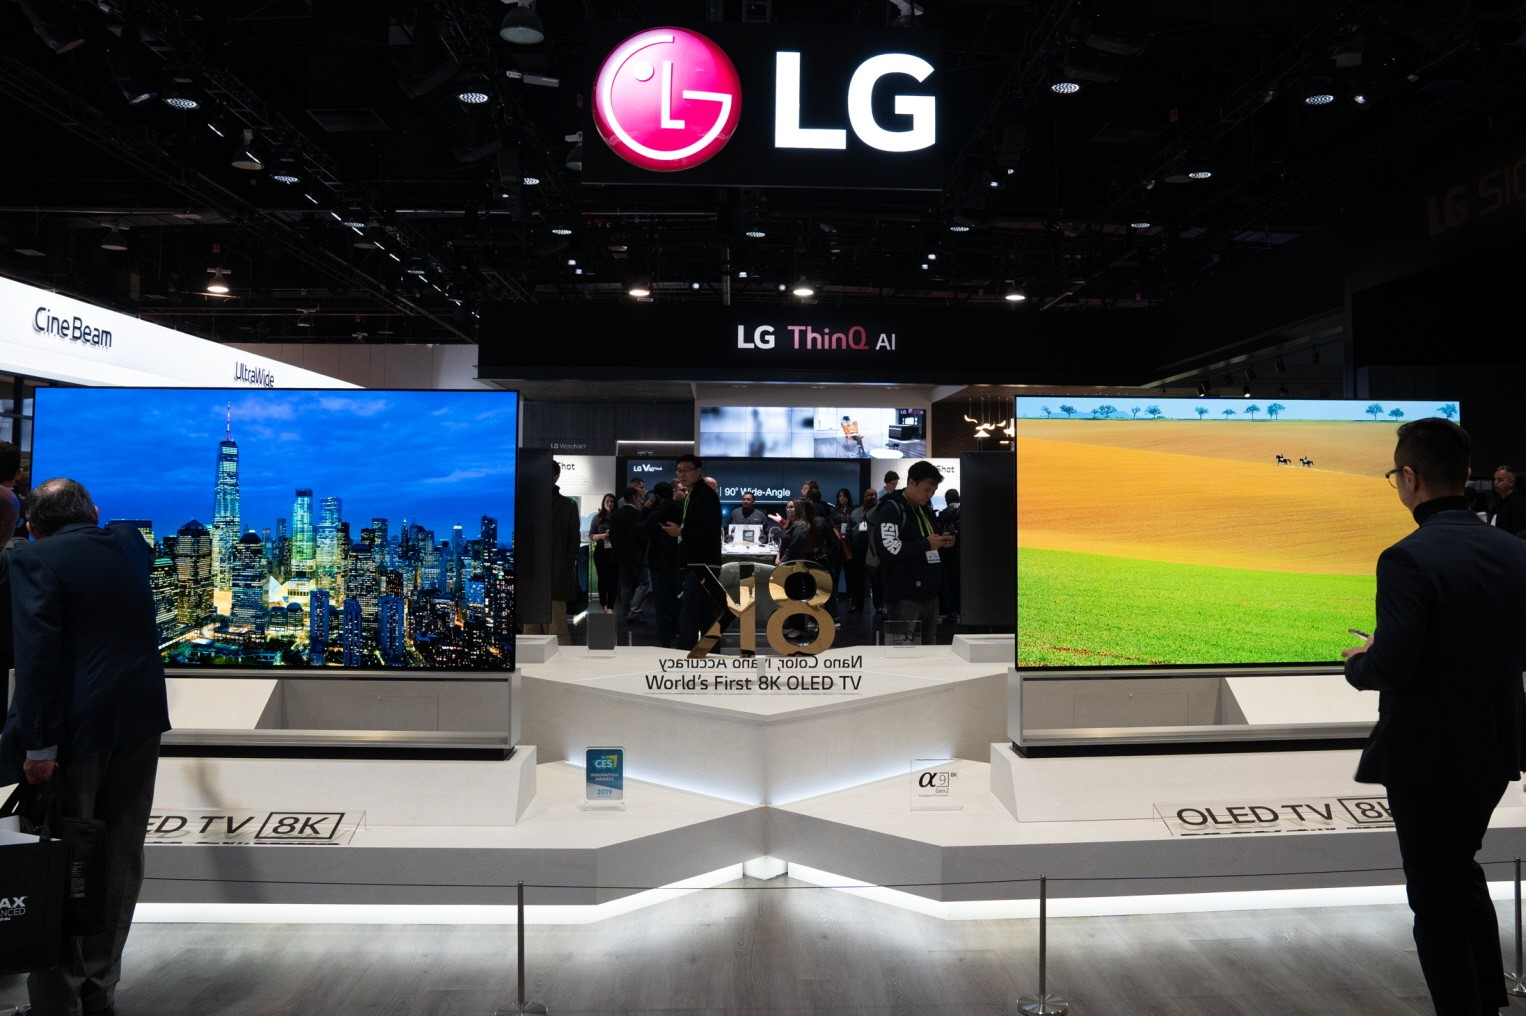 Front view of the LG 8K OLED TV display zone with two 8K models at the company's booth during CES 2019